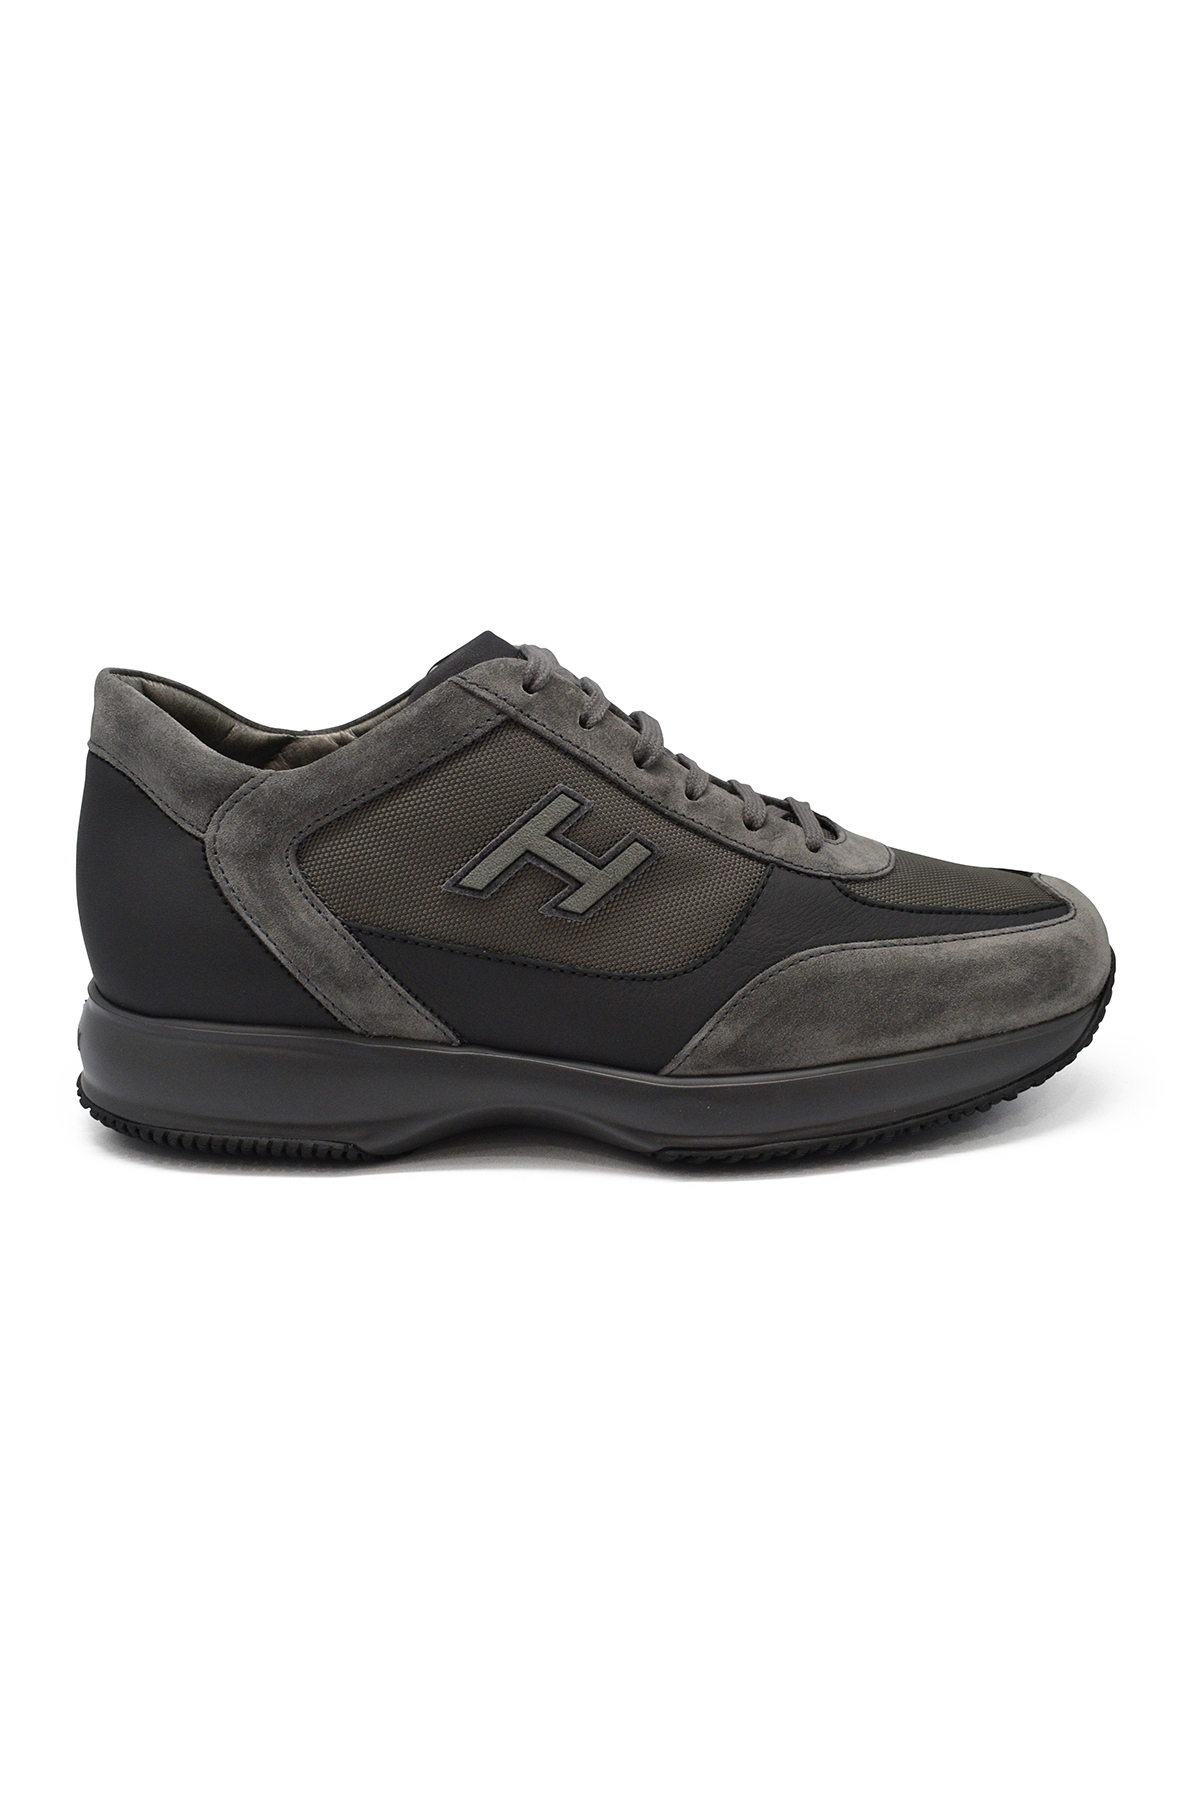 Hogan Interactive N20 sneakers in grey suede and leather with grey technical fabric inserts.